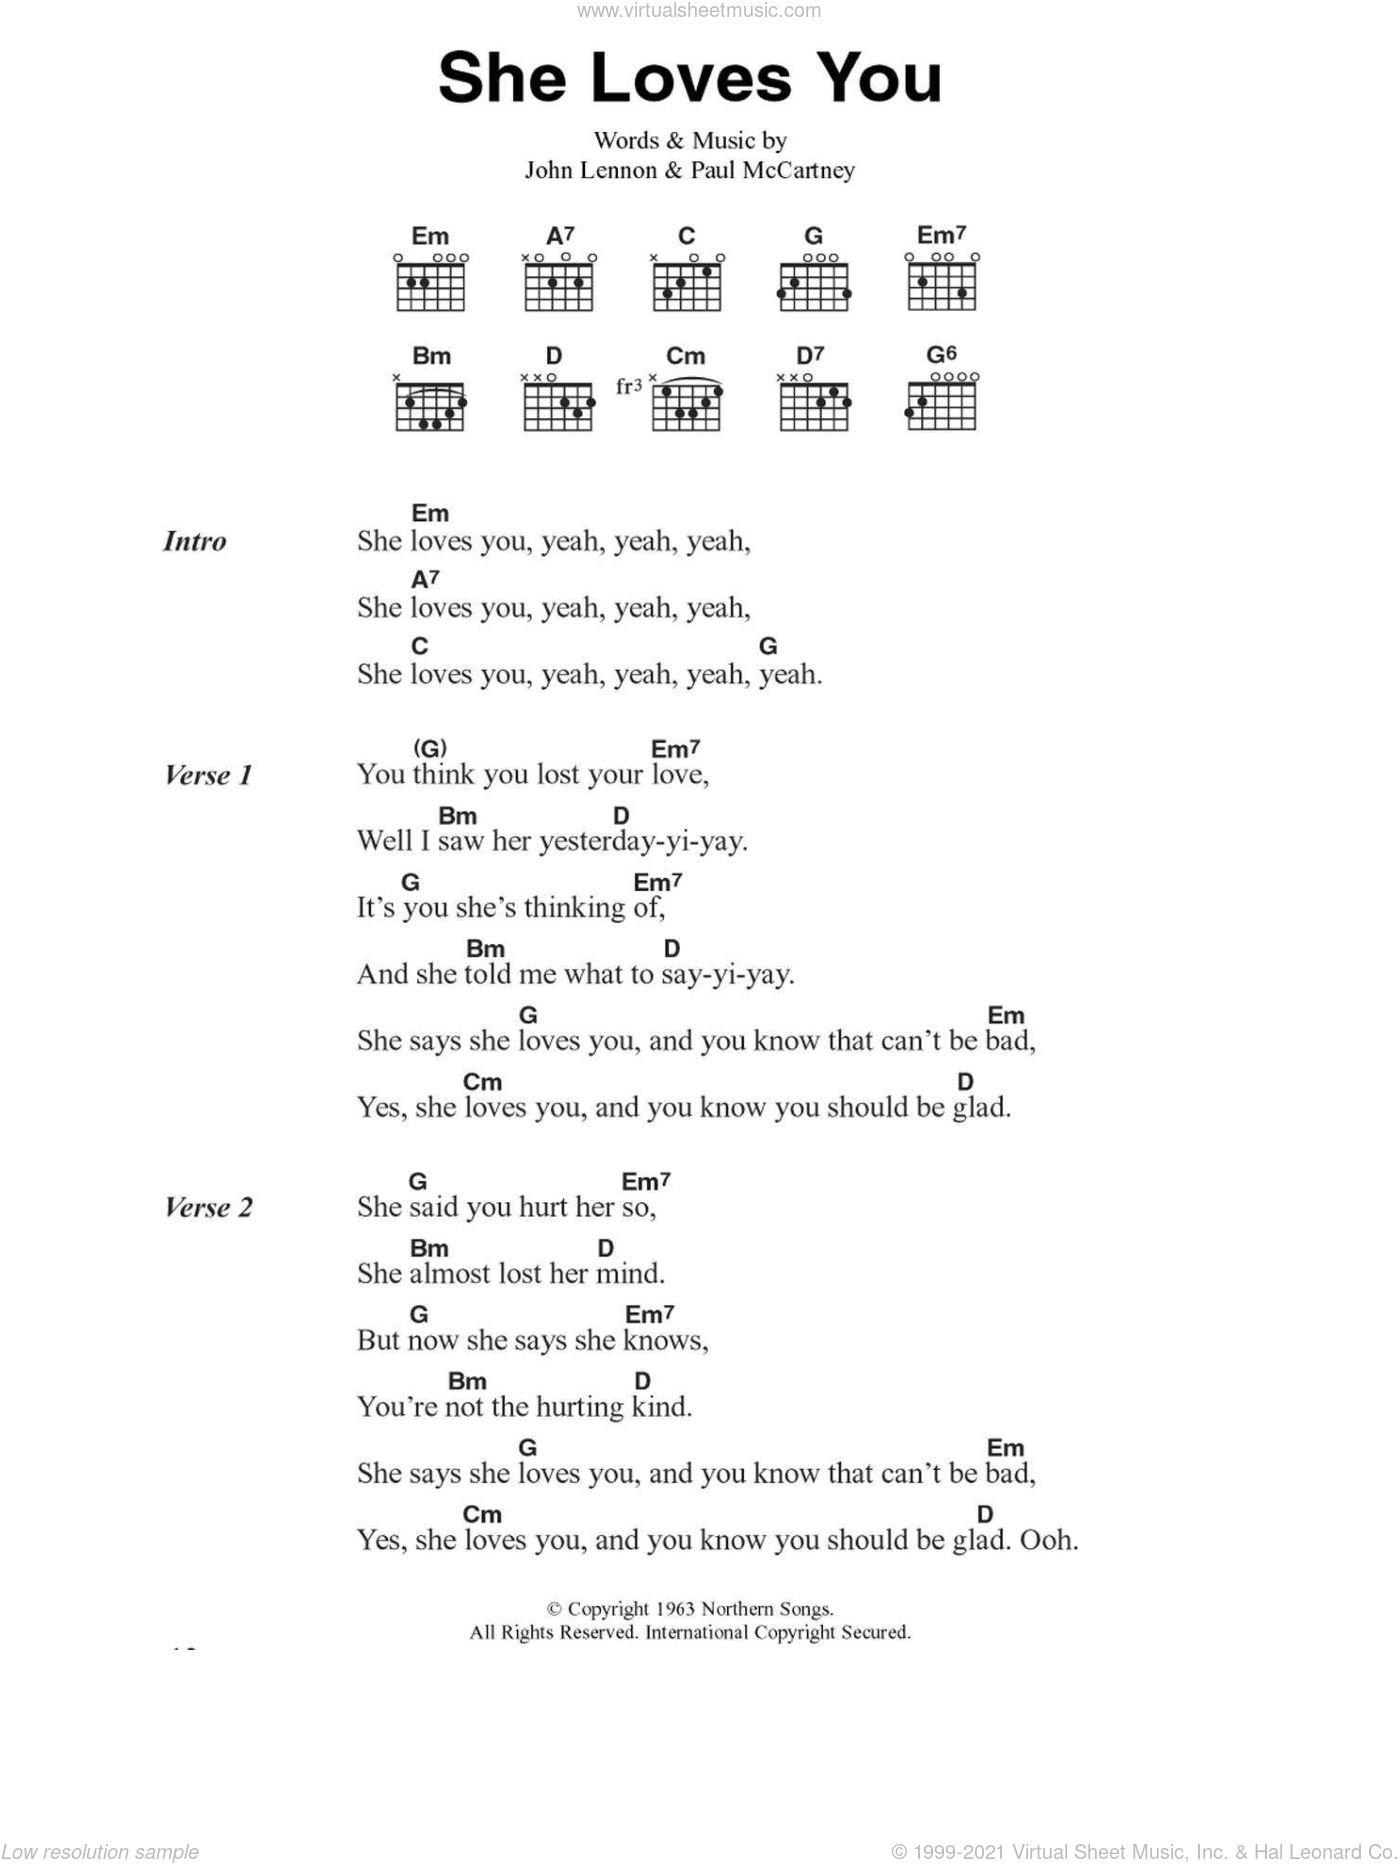 She Loves You sheet music for guitar (chords) by The Beatles, John Lennon and Paul McCartney. Score Image Preview.